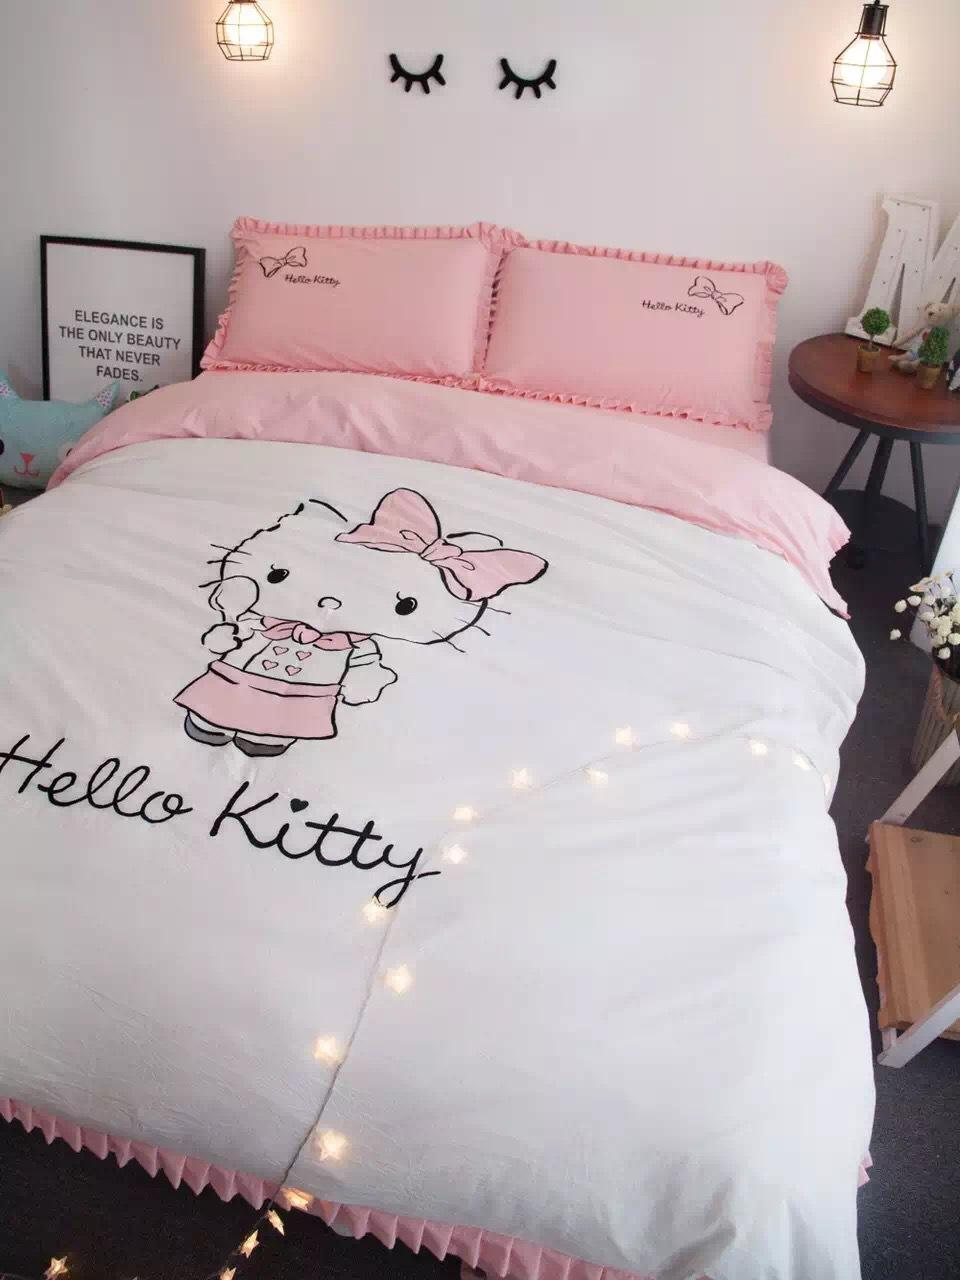 100% Cotton Carton Stye Hello Kitty Embroidered Bedding Sets White Duvet  Cover Pink Bedsheet Pollowcases King Queen Size Red Bedding Kids Comforter  Sets ...